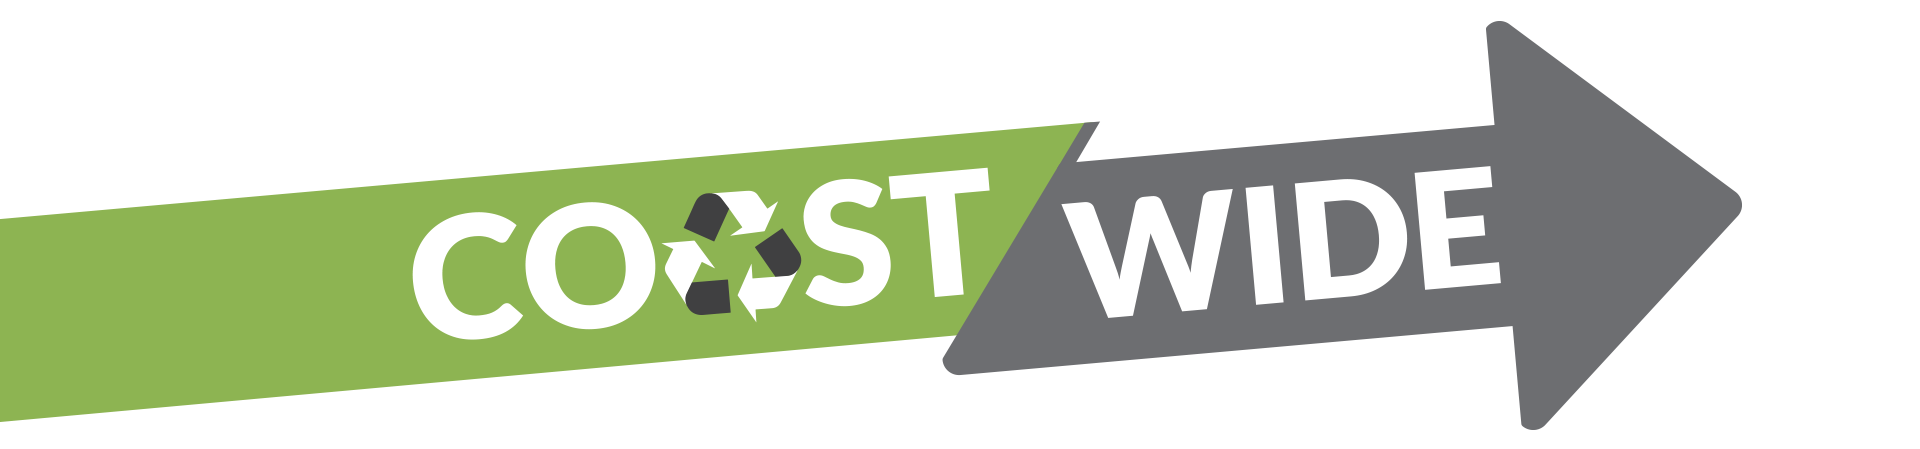 Coast Wide Skip Services arrow logo